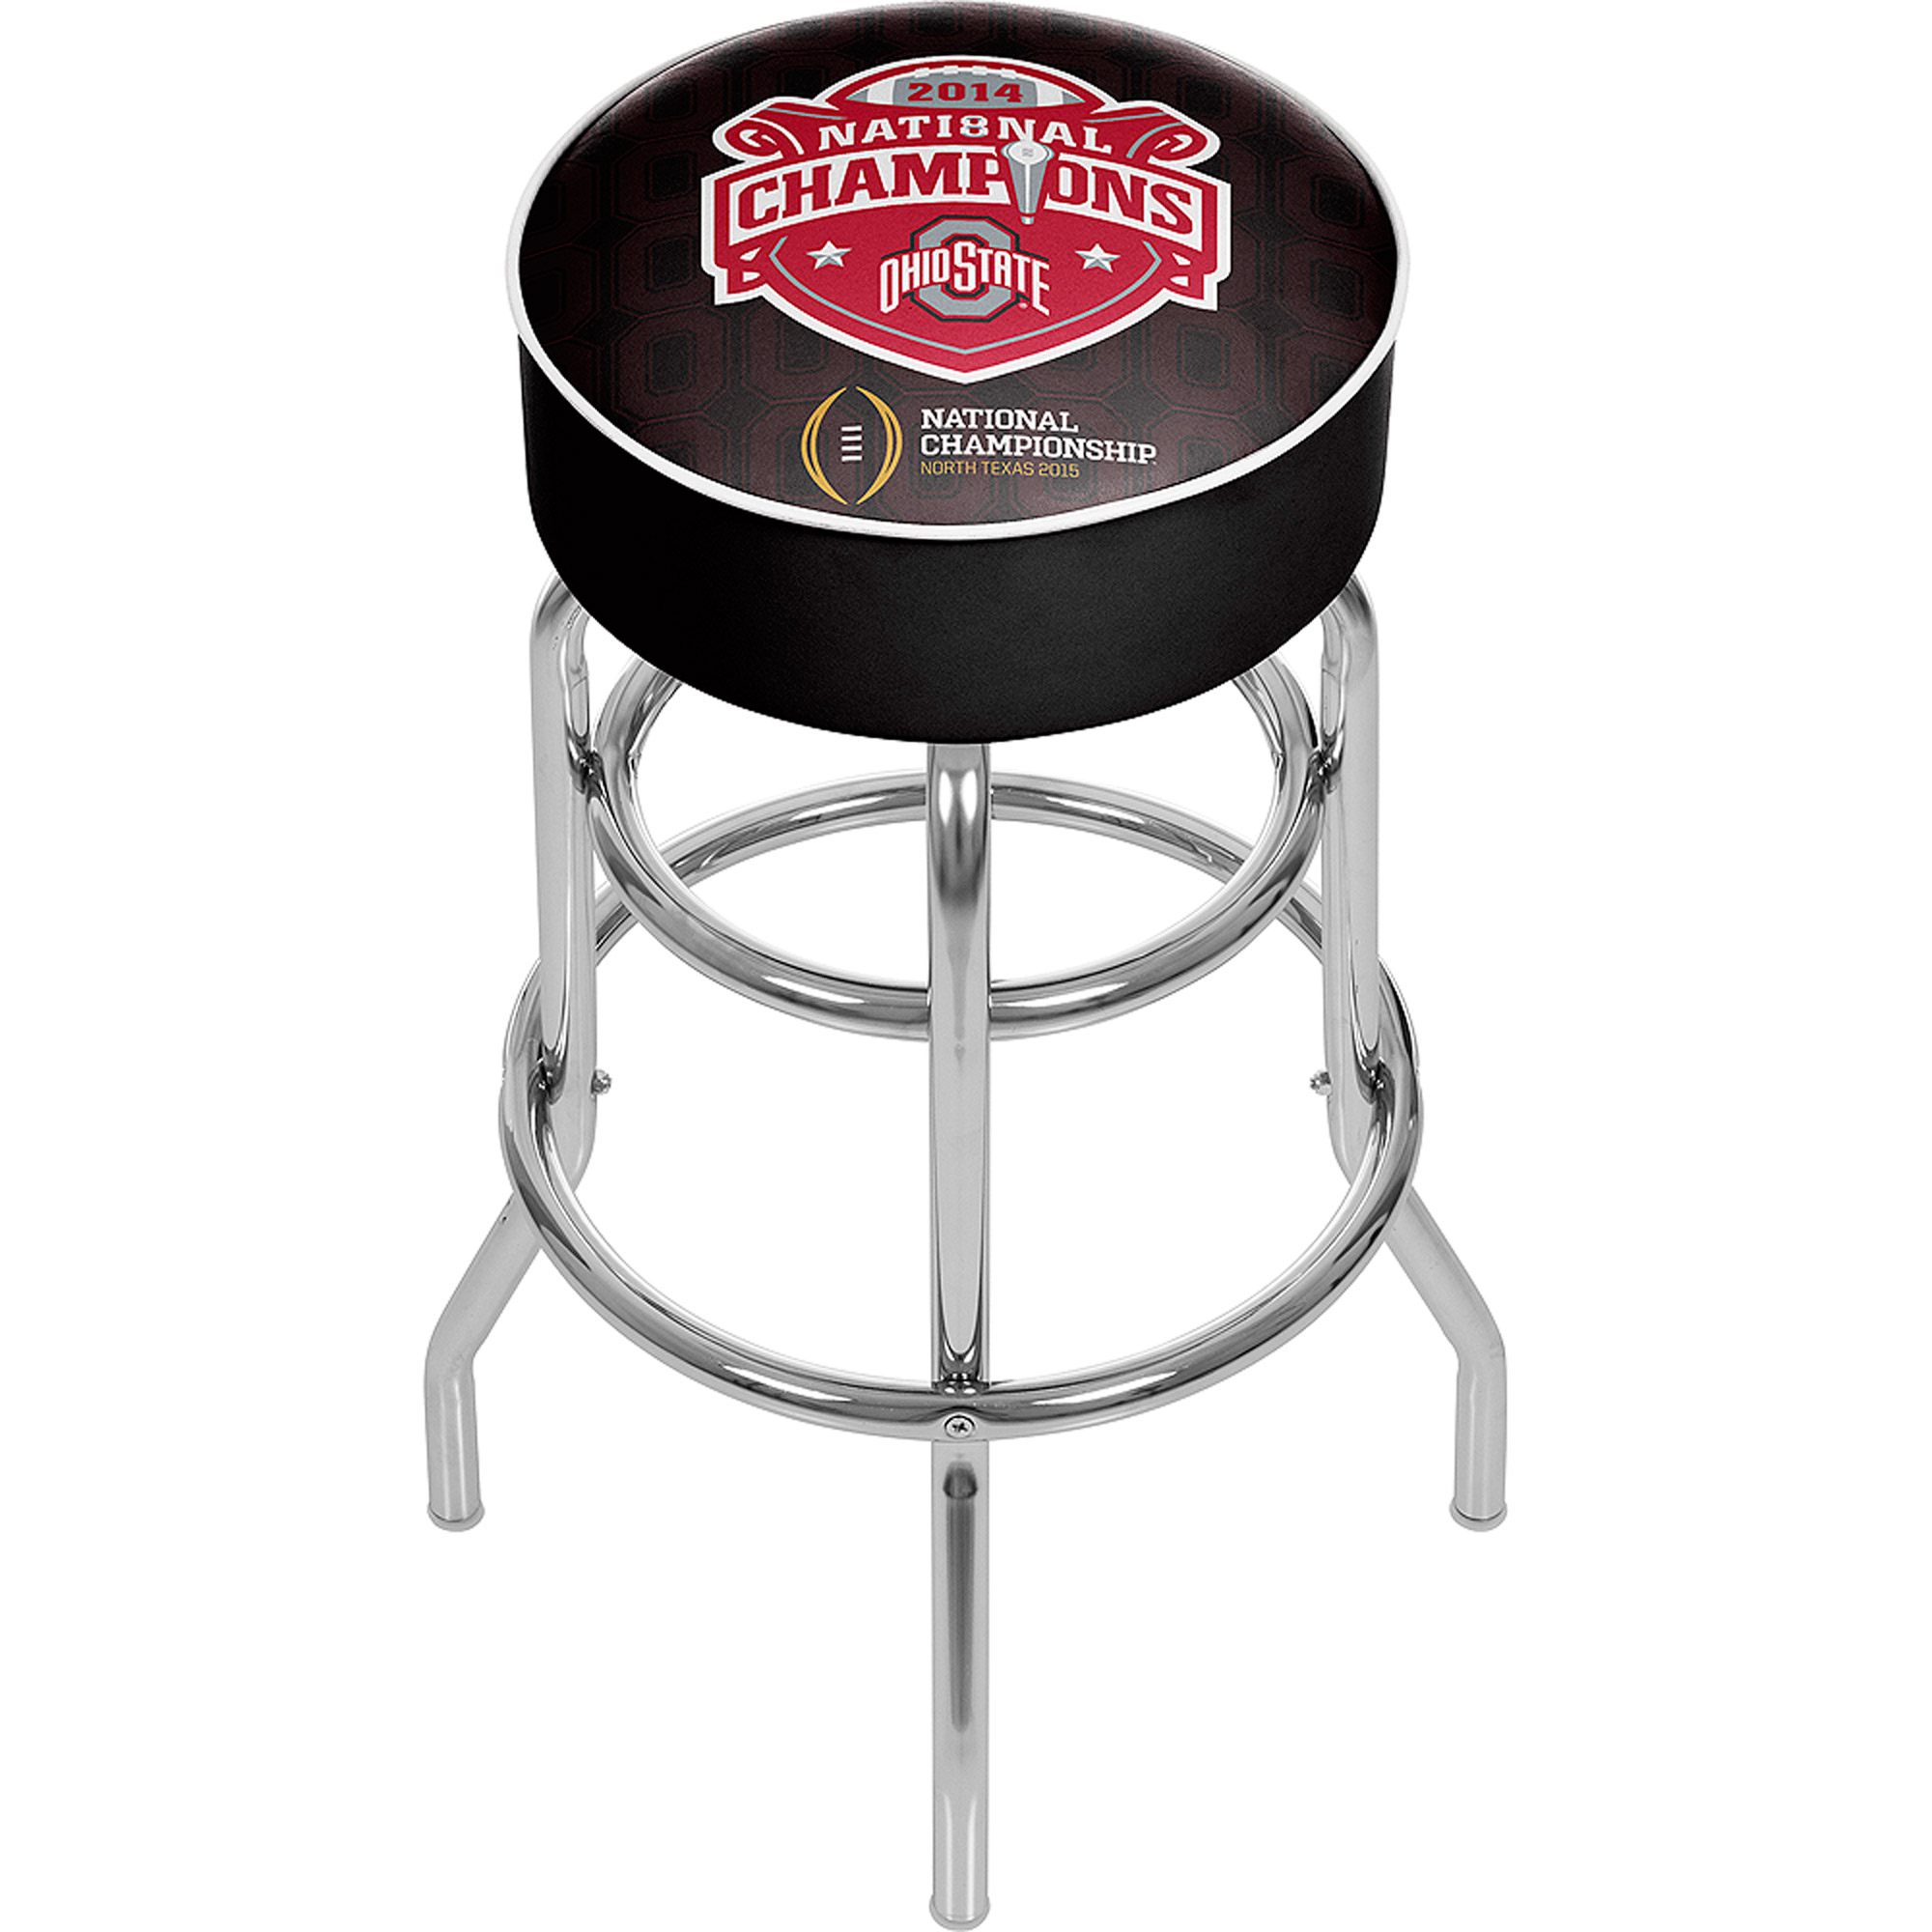 Ohio State National Champions Chrome Bar Stool with Swivel, Fade